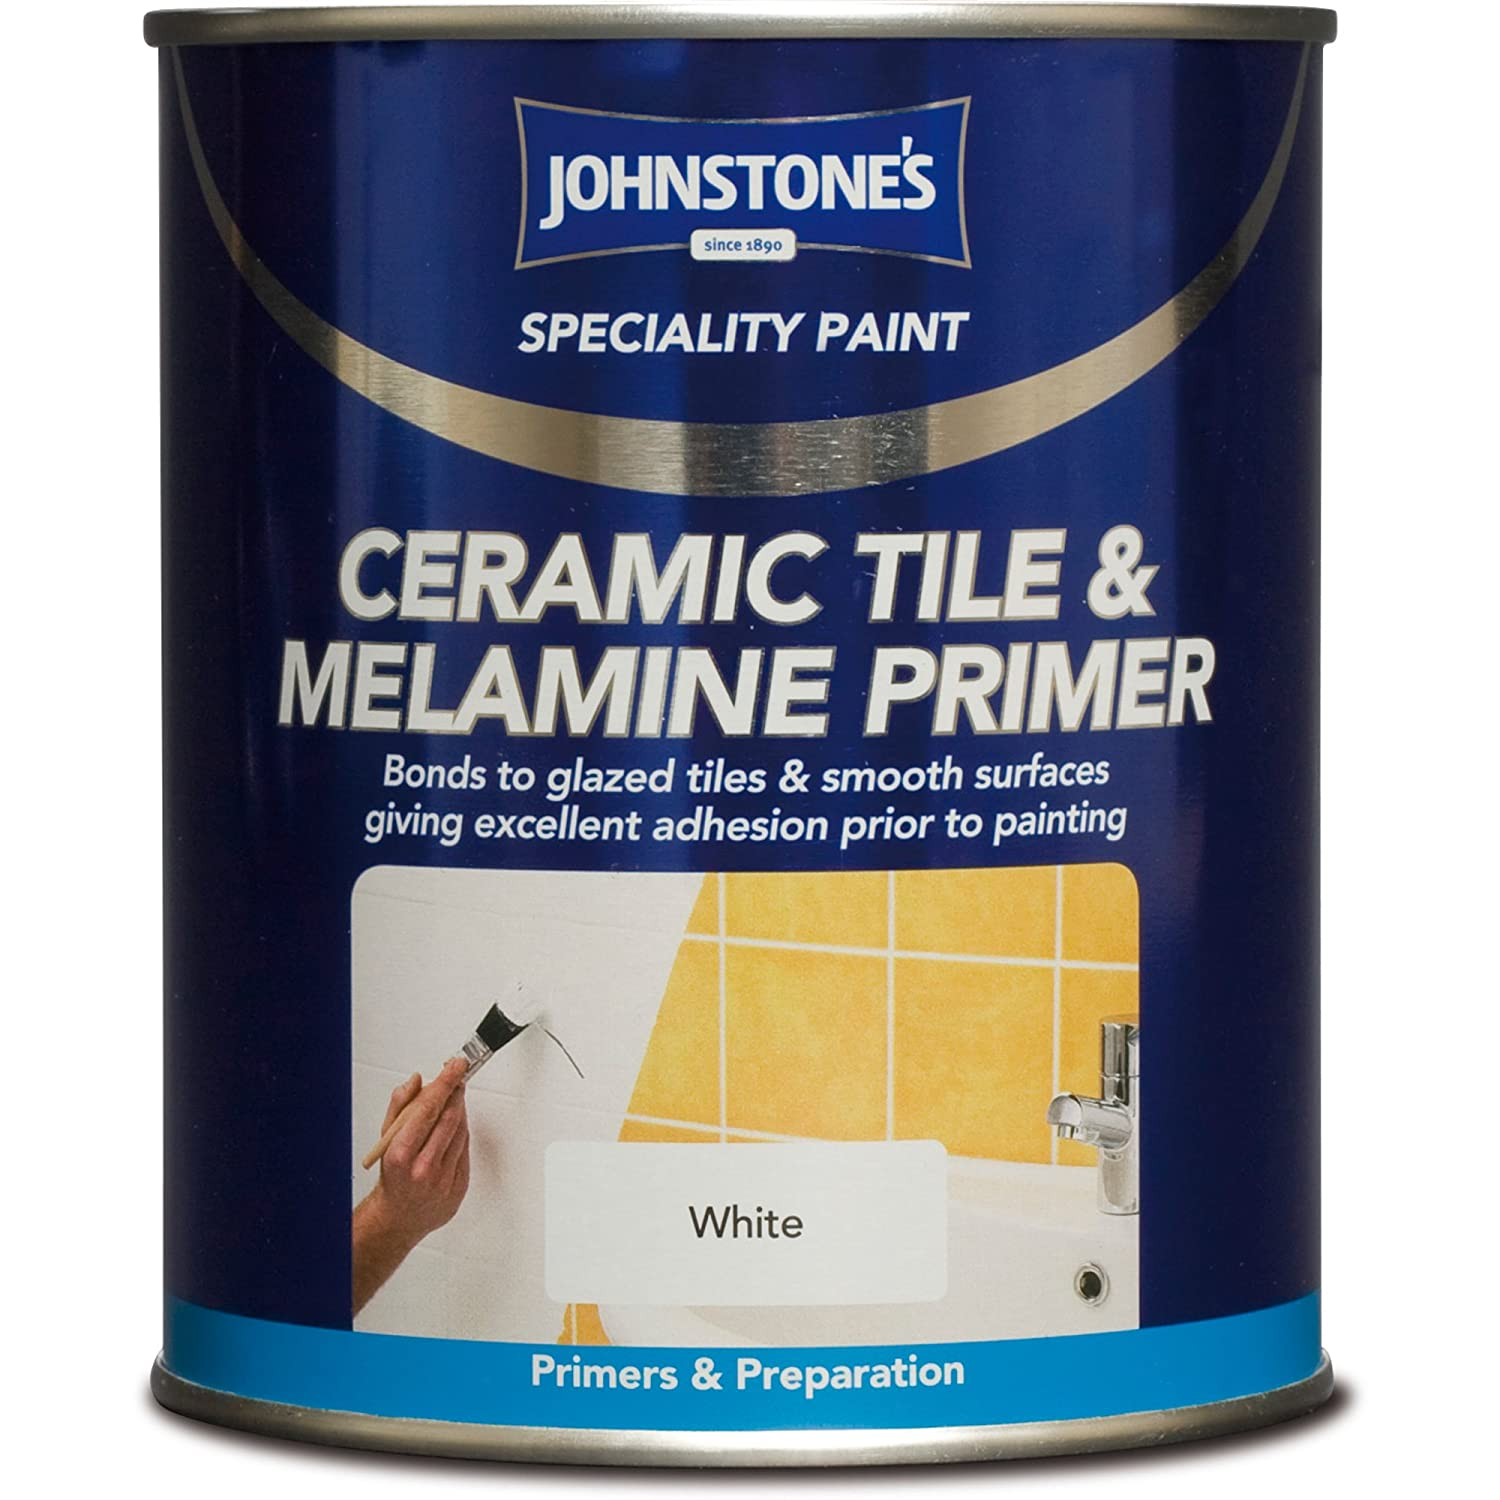 Johnstones specialty ceramic tile and melamine primer 750ml johnstones specialty ceramic tile and melamine primer 750ml amazon diy tools dailygadgetfo Image collections